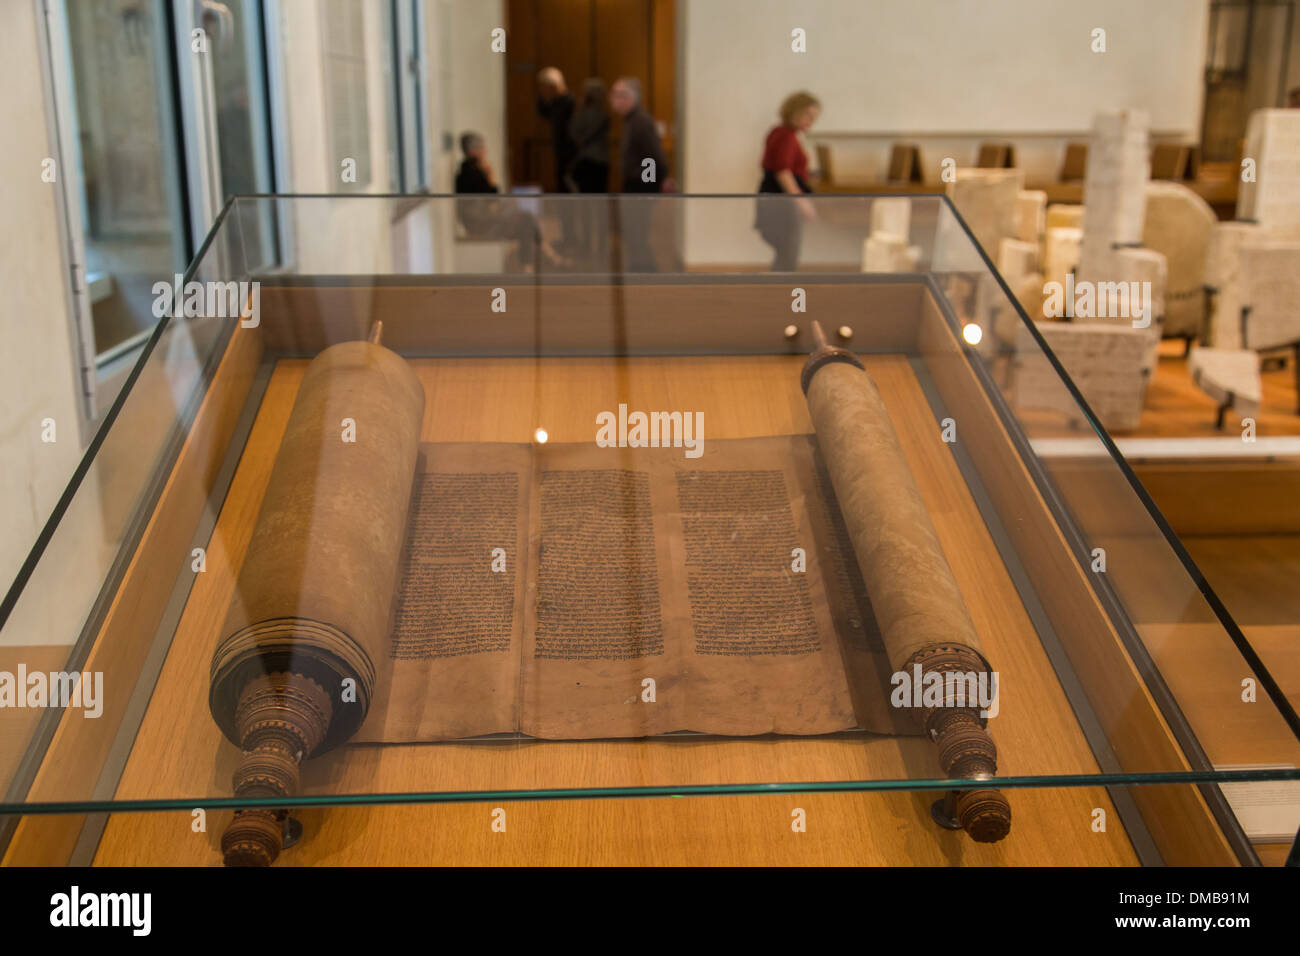 TORAH, MUSEUM OF JEWISH ART AND HISTORY IN THE HOTEL DE SAINT-AIGNAN, 3RD ARRONDISSEMENT, PARIS (75), ILE-DE-FRANCE, FRANCE - Stock Image